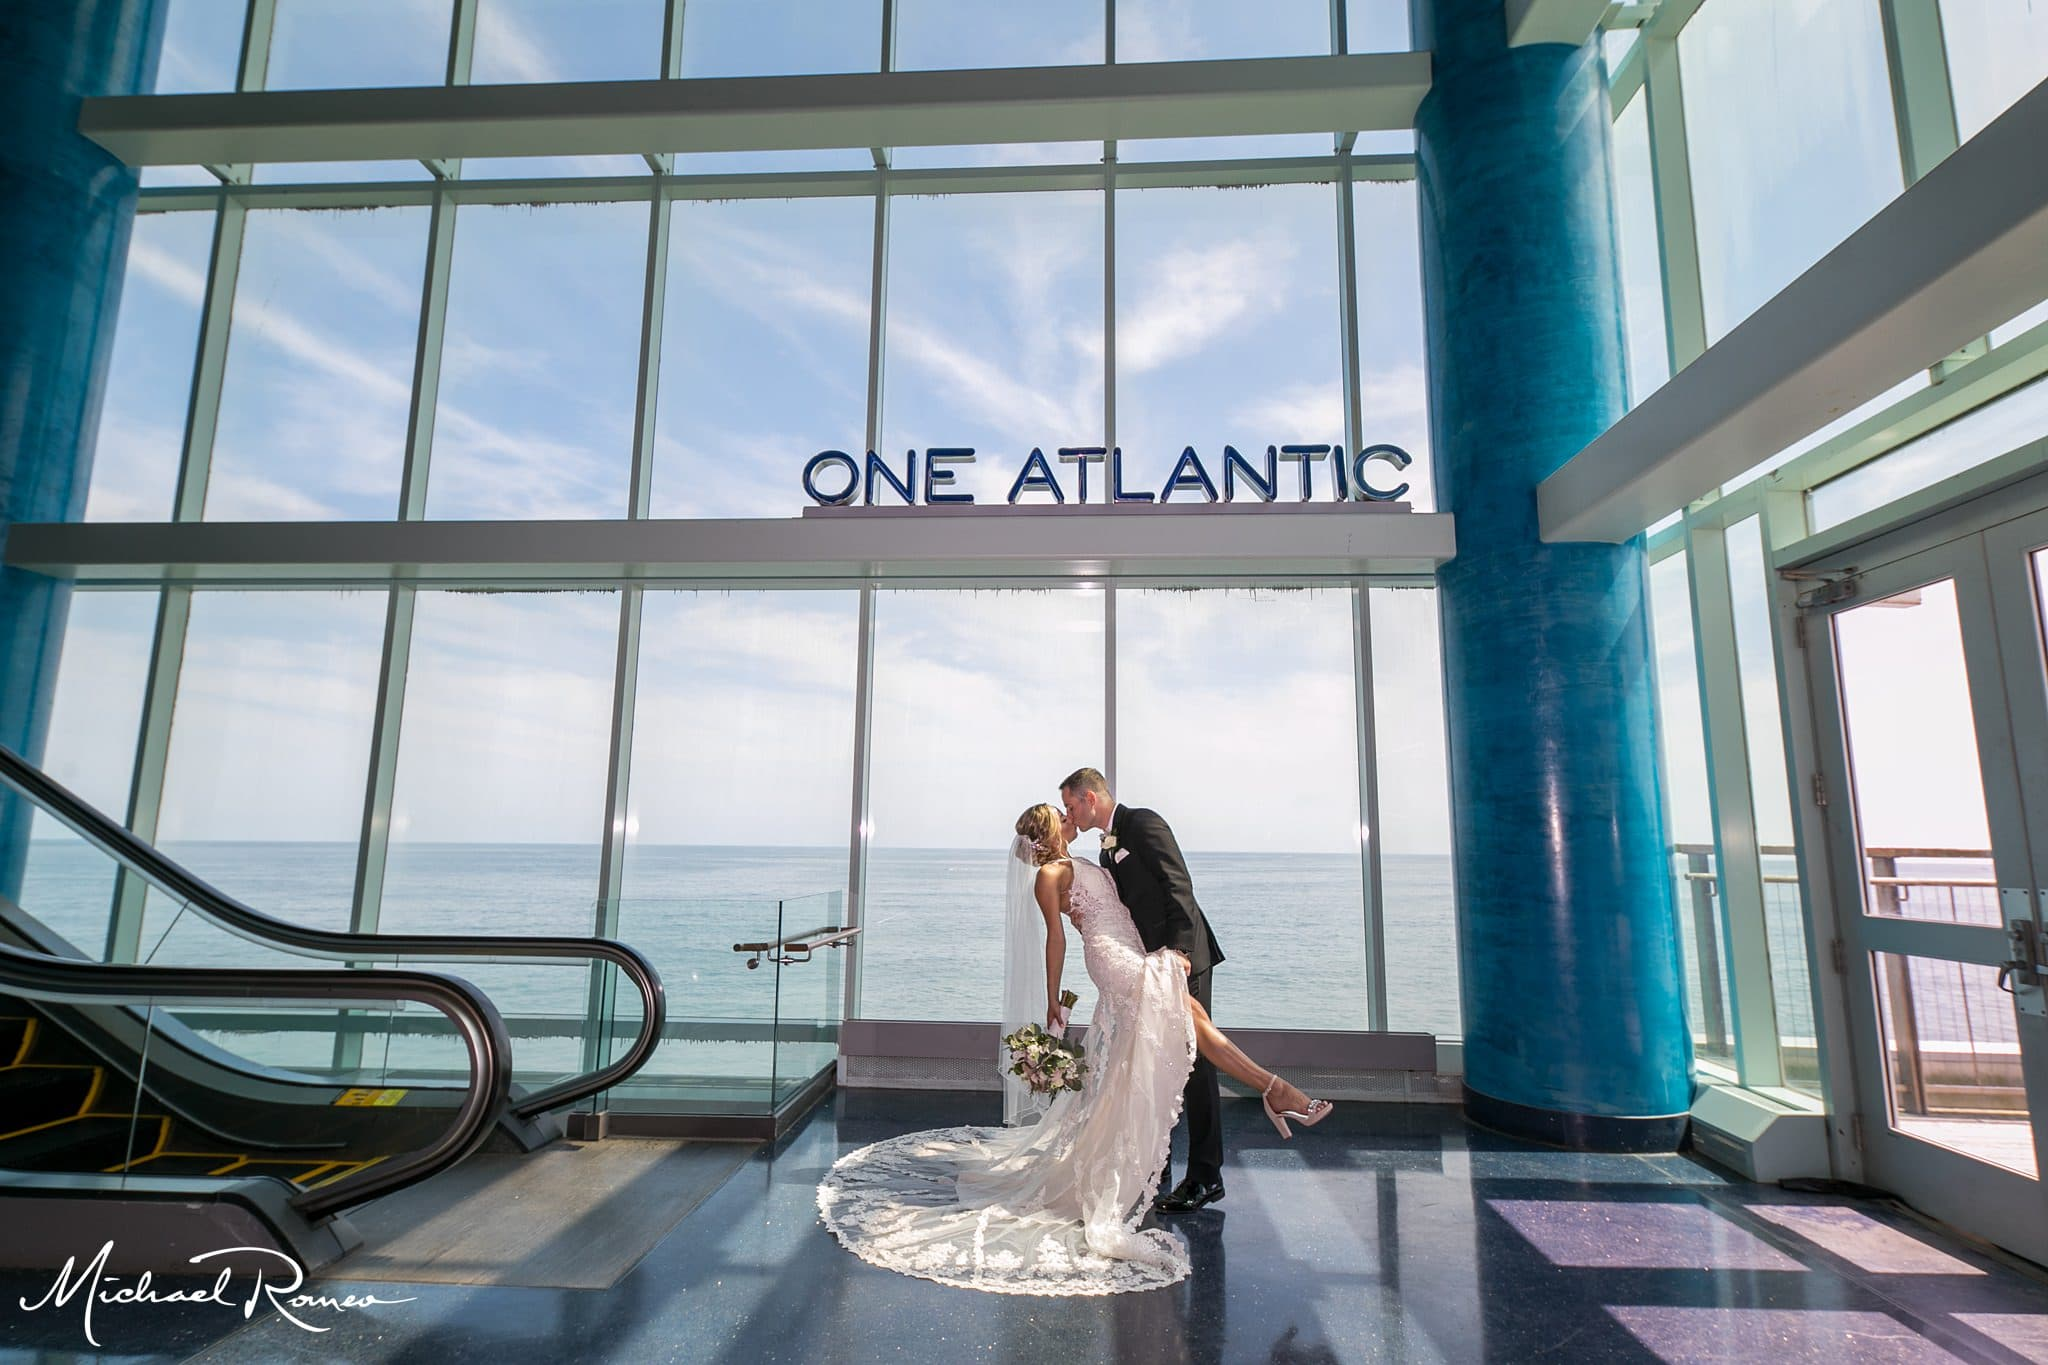 New Jersey Wedding photography cinematography Michael Romeo Creations 1443 - What to Expect When You Plan an Event with One Atlantic Events